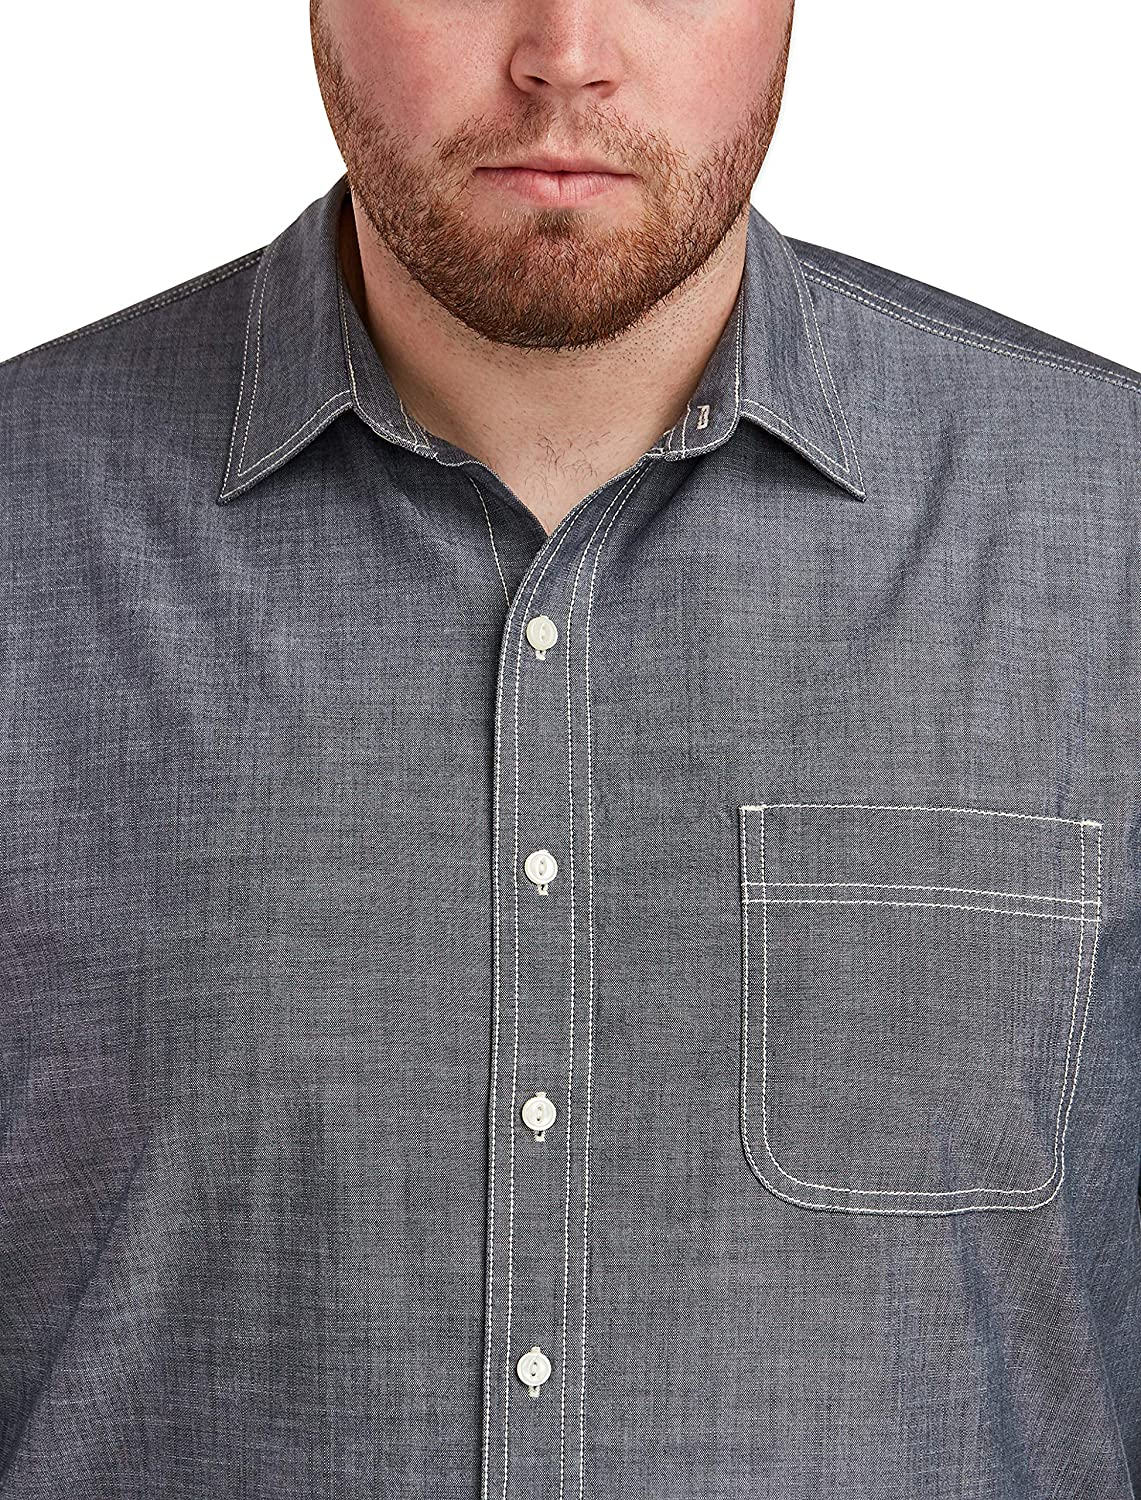 Essentials Mens Big /& Tall Long-Sleeve Chambray Shirt fit by DXL